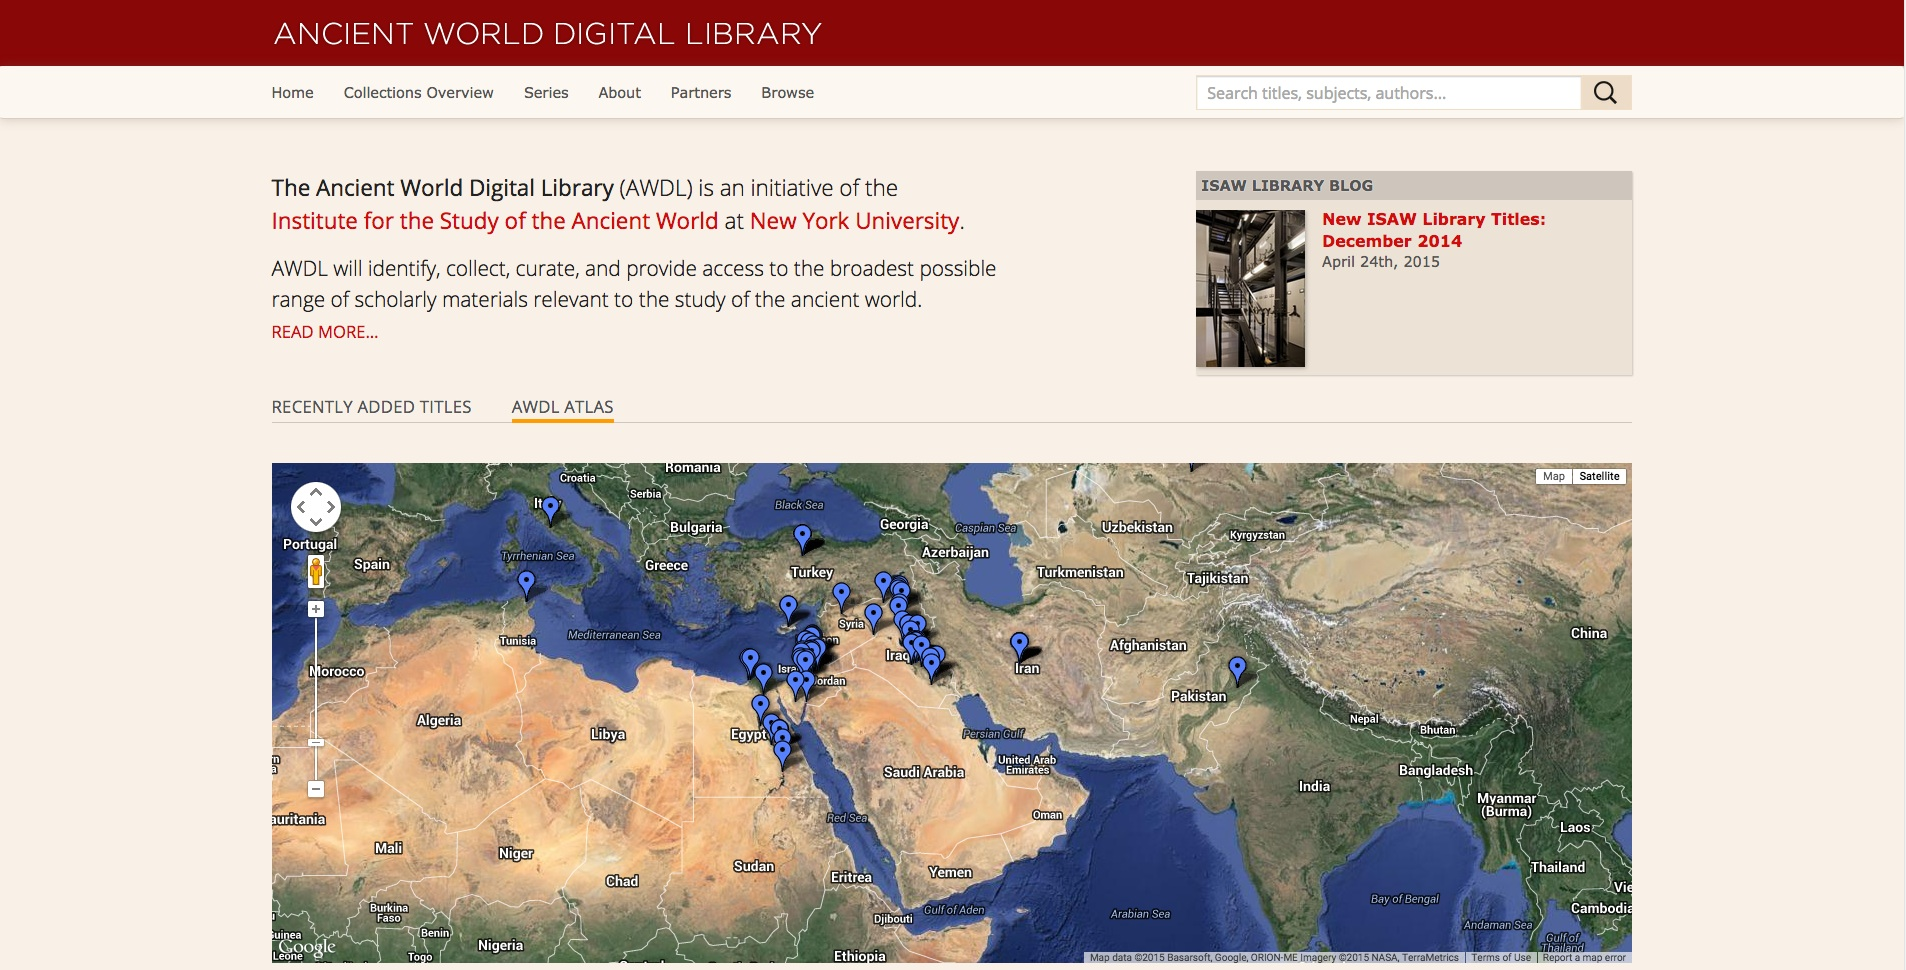 ISAW Library Relaunches Ancient World Digital Library with Redesigned Portal